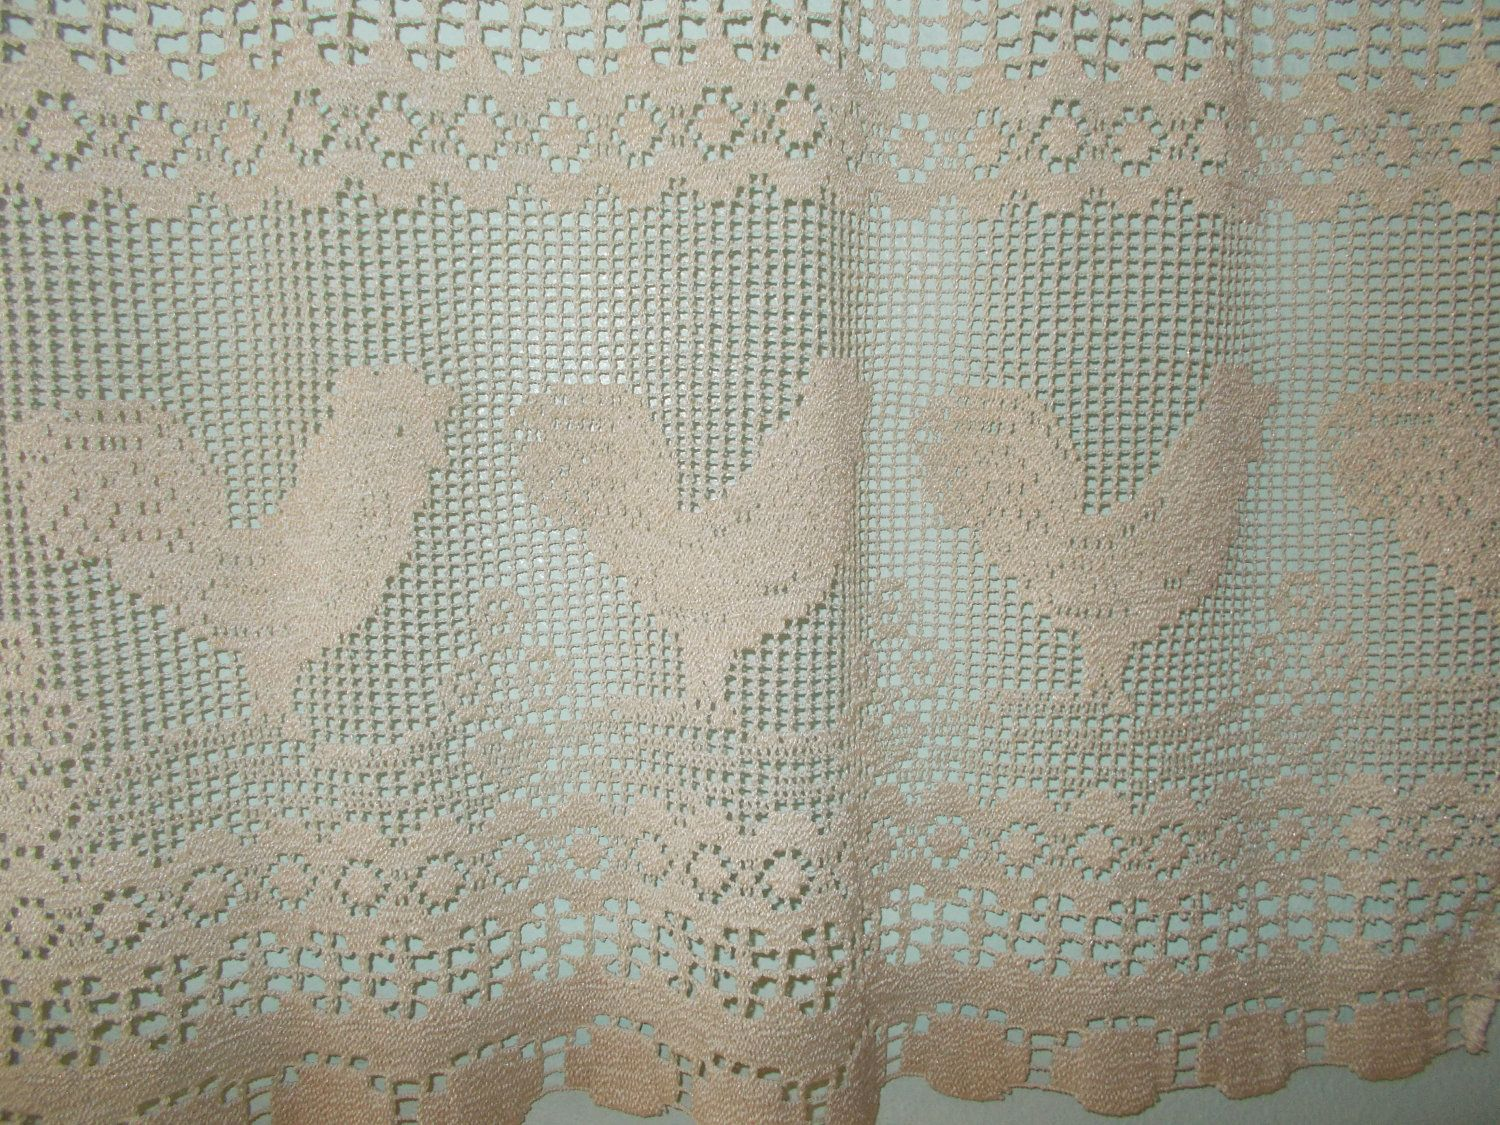 Crochet Cafe Curtain Chicken Design French Country